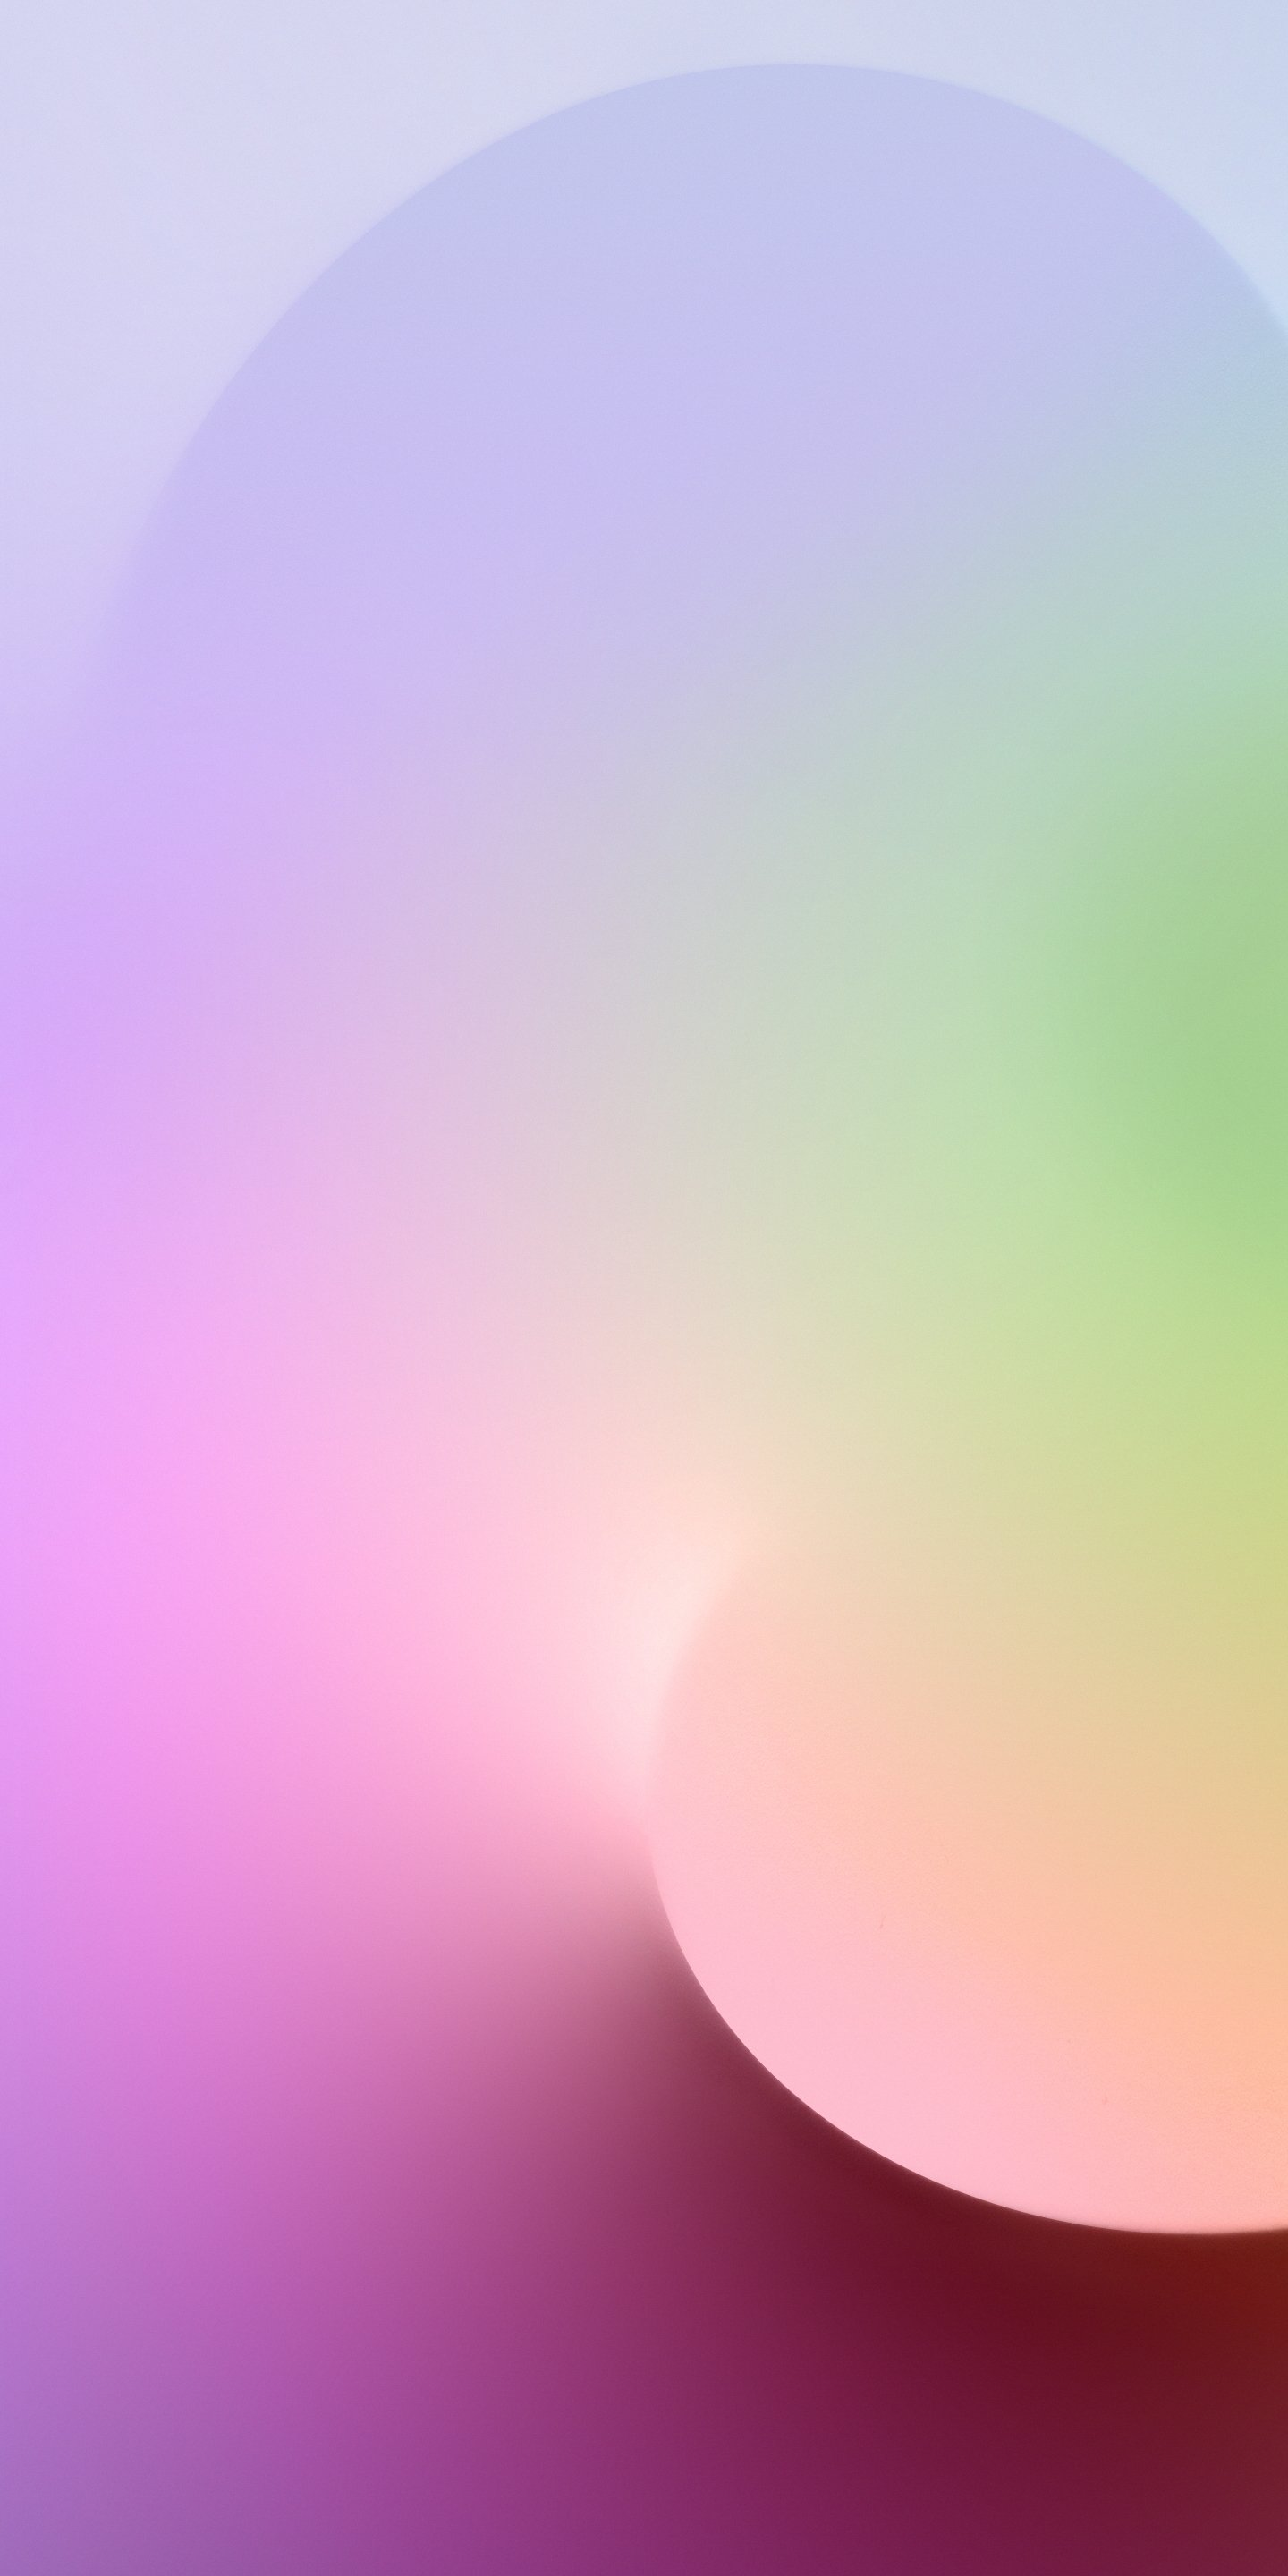 wallpaper android lg: Get A Taste Of The LG V30 On Your Device With These